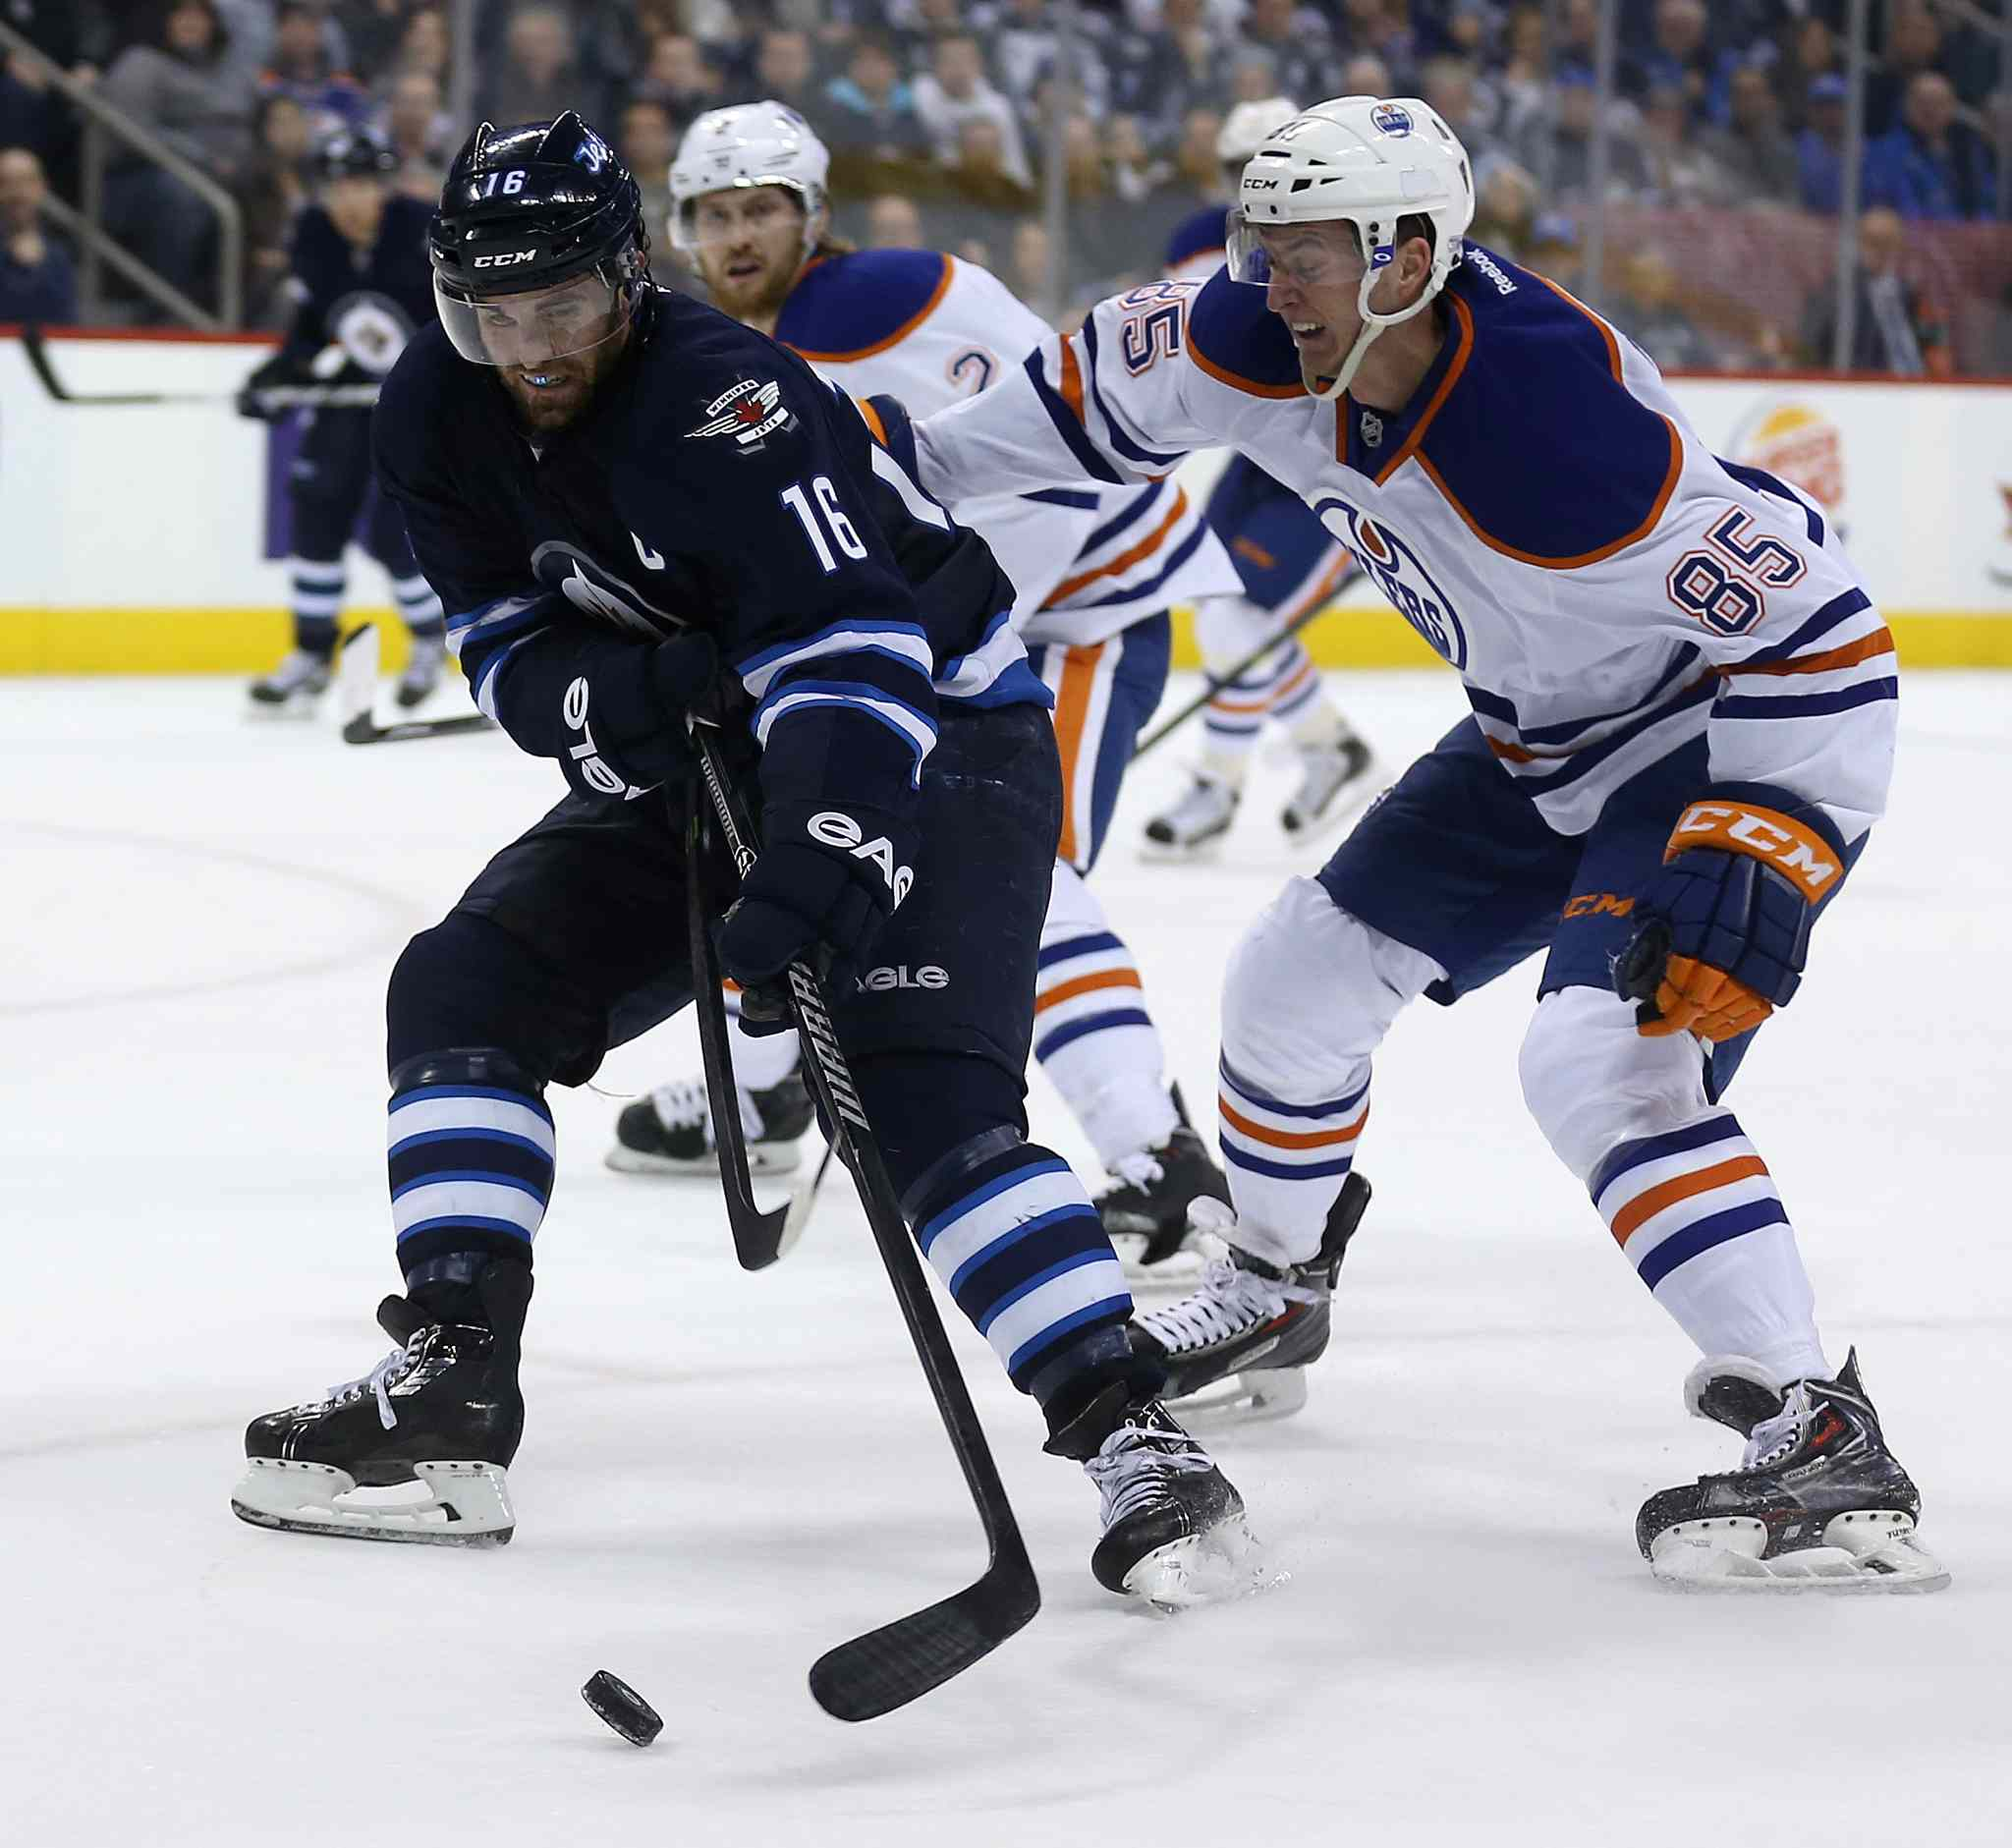 Winnipeg Jets' Andrew Ladd (16) drives past Edmonton Oilers' Martin Marincin (85) during second-period NHL play in Winnipeg Saturday afternoon.